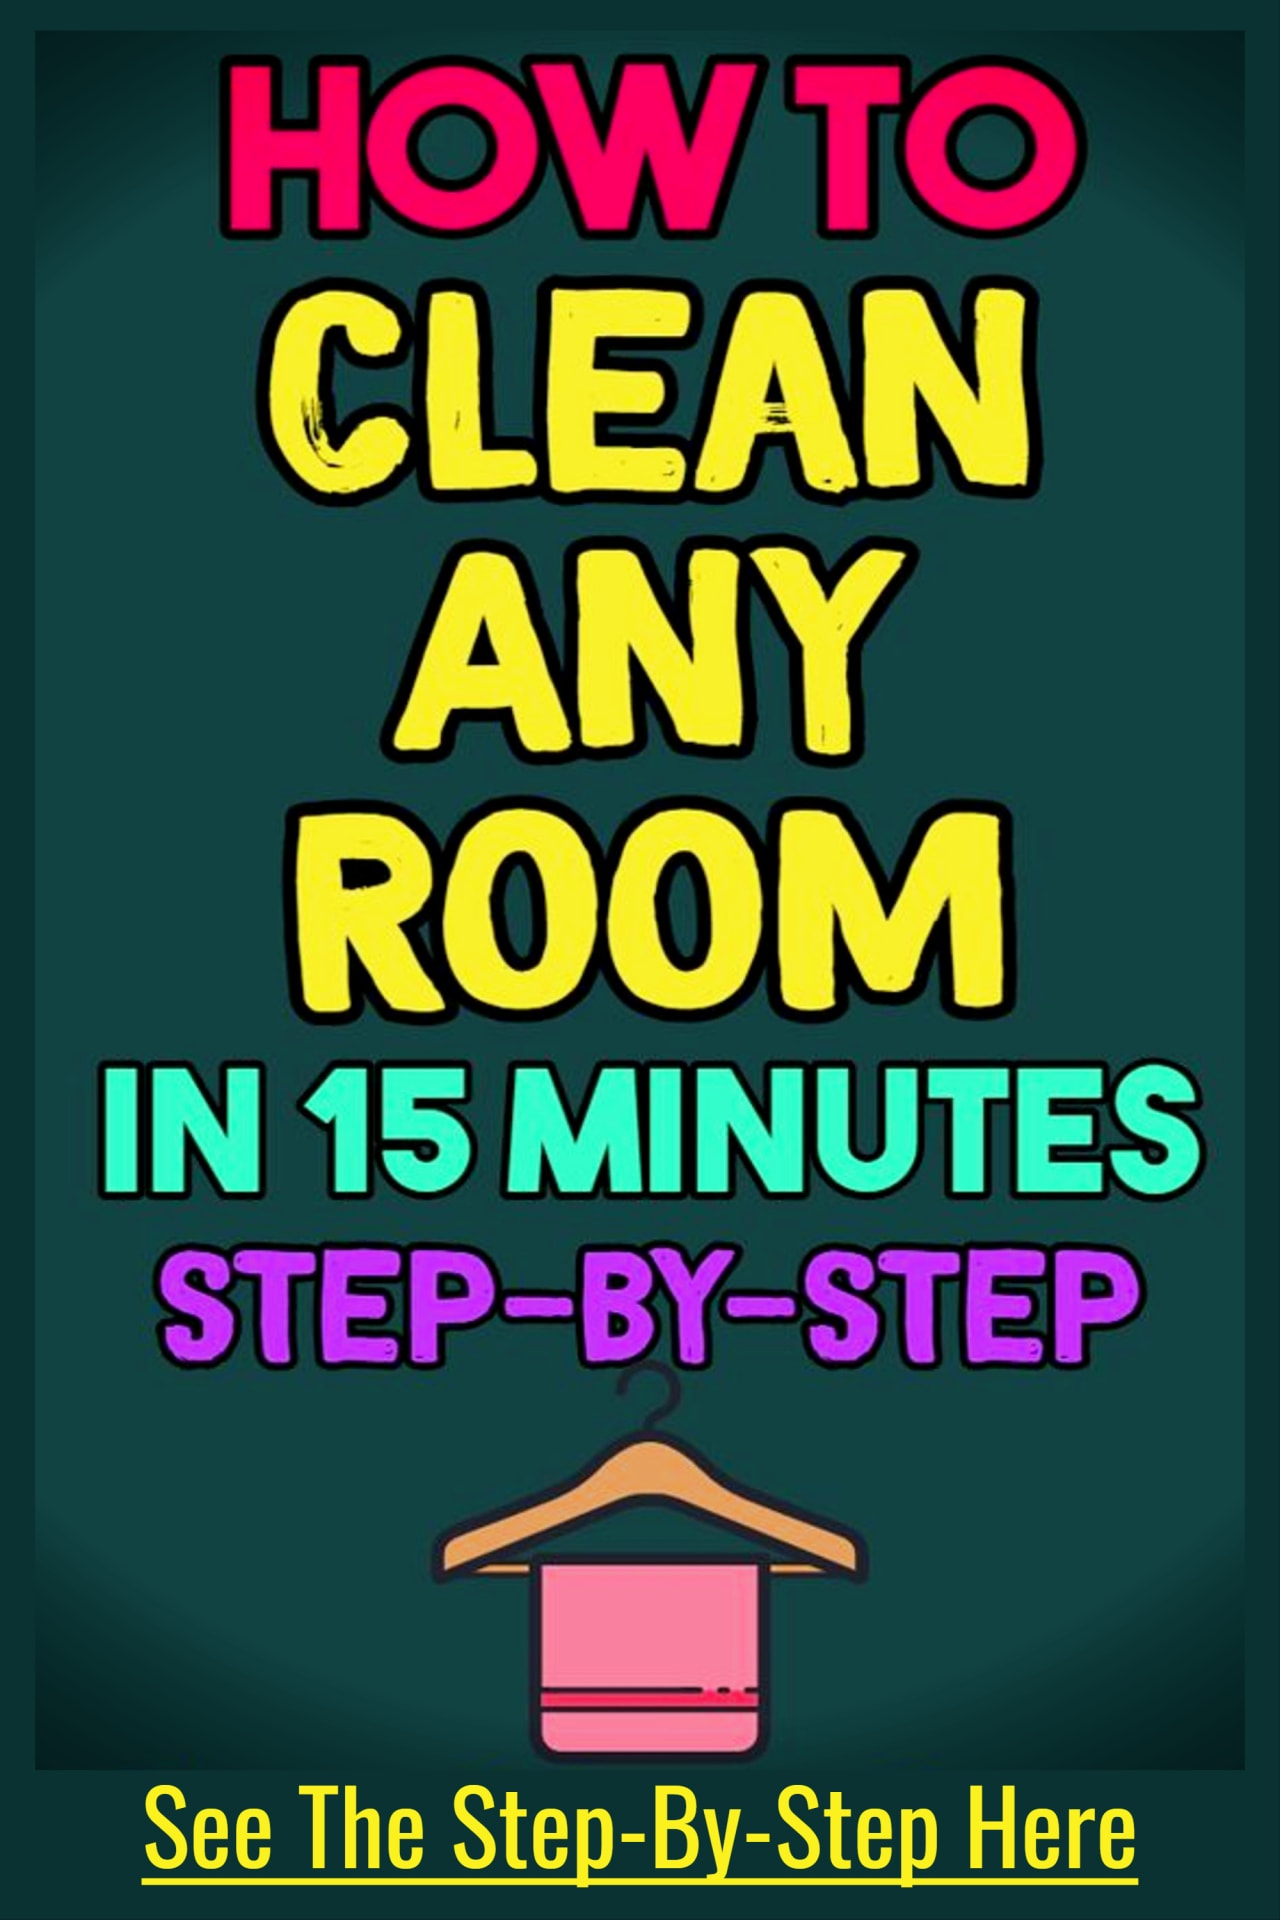 How to clean a cluttered house FAST - clean any room fast step by step and room by room to an uncluttered house on a budget - even if feeling overwhelmed